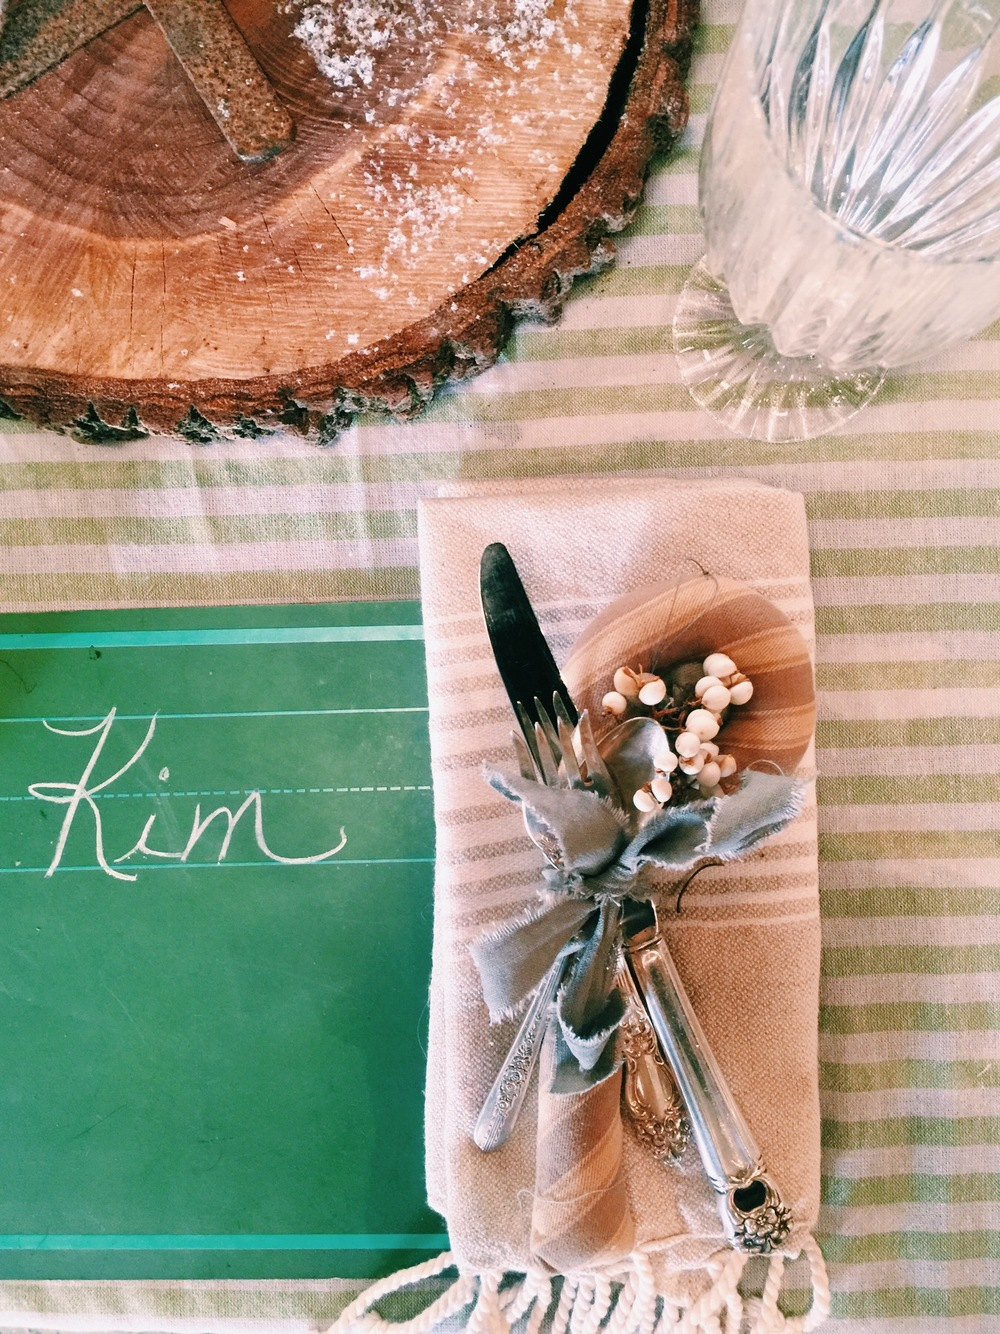 We used turkish towels as a table runner & for our napkins to add texture to the mix. Our friend Jason Counts (of DIRT) handmade the cloth candy cane from vintage ticking. It tied the setting + silverware together in a cool way!